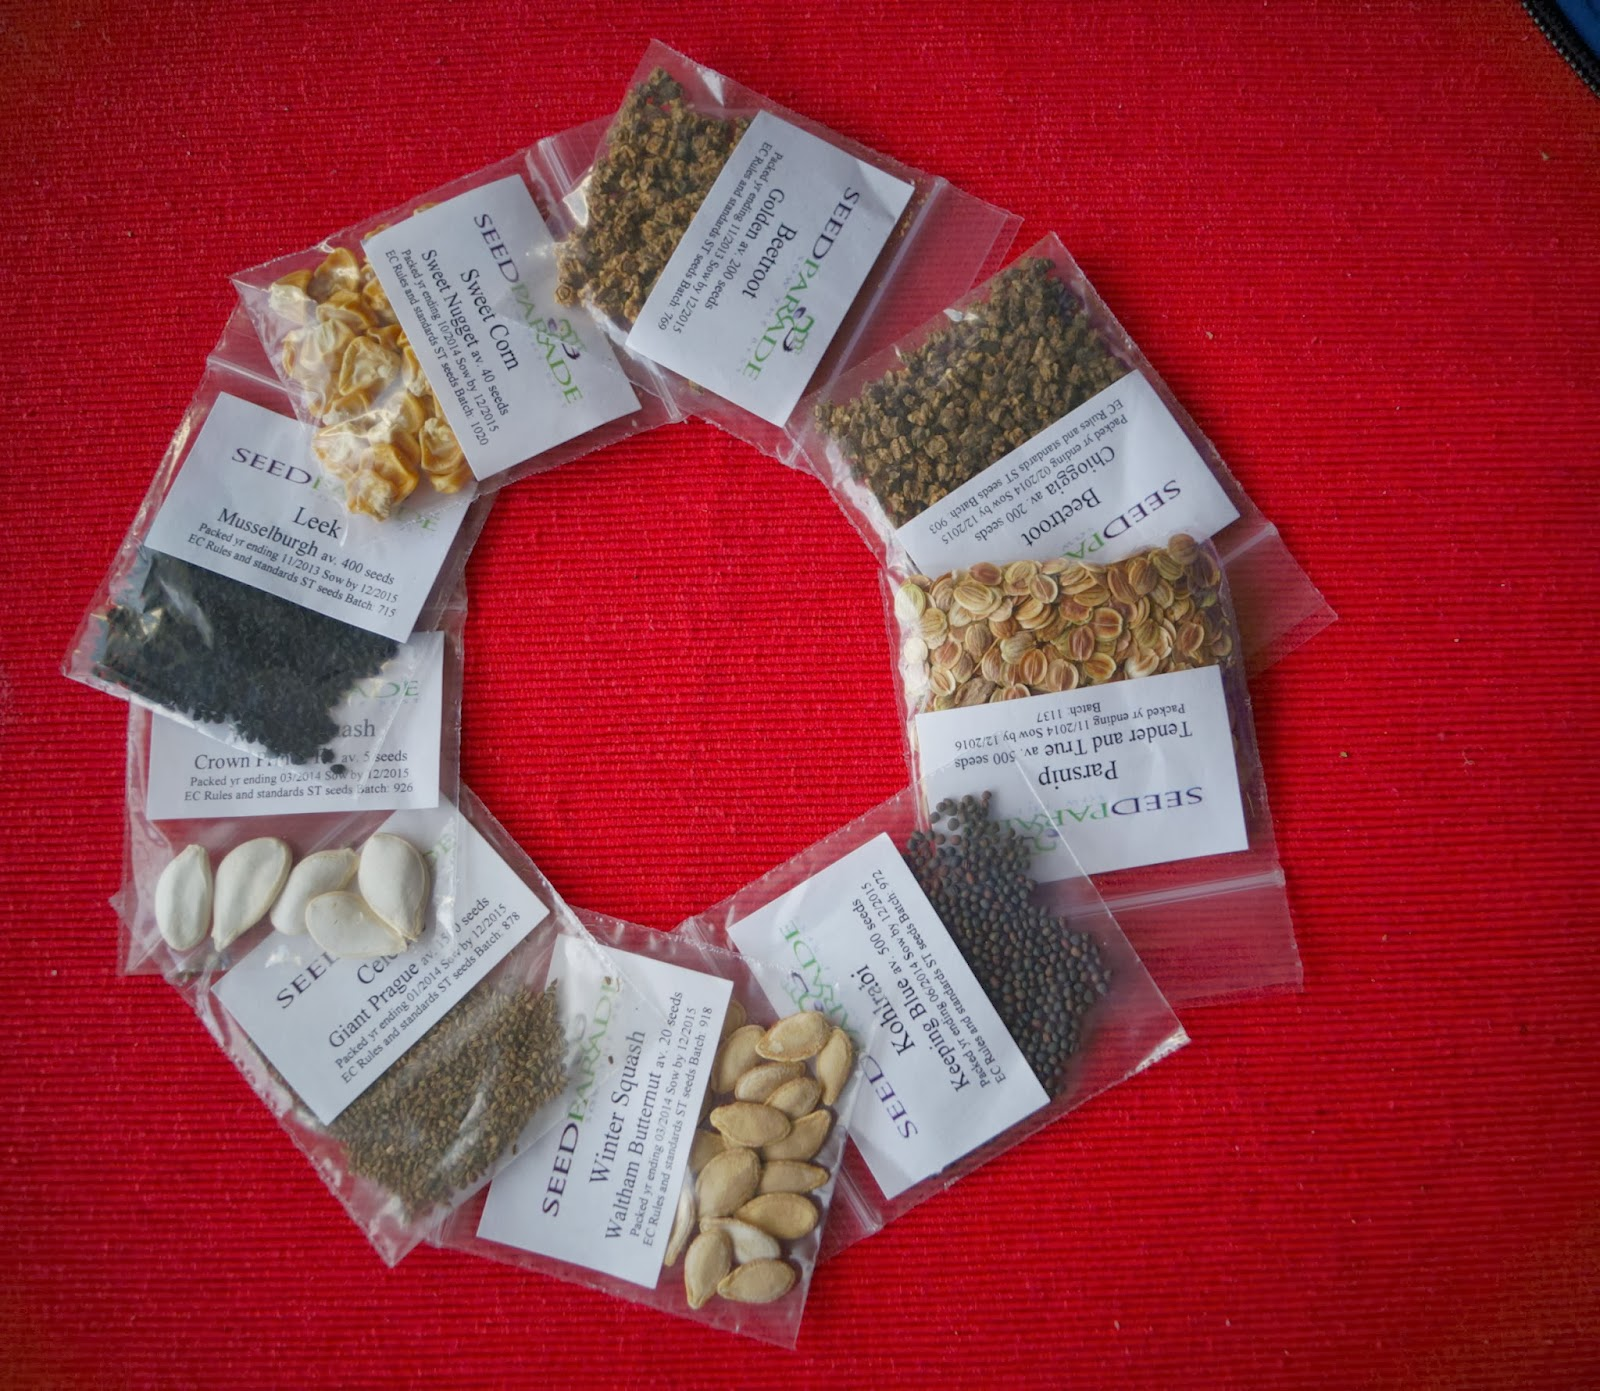 Veggie Seeds 1 - 'Grow Our Own' Allotment blog 2014